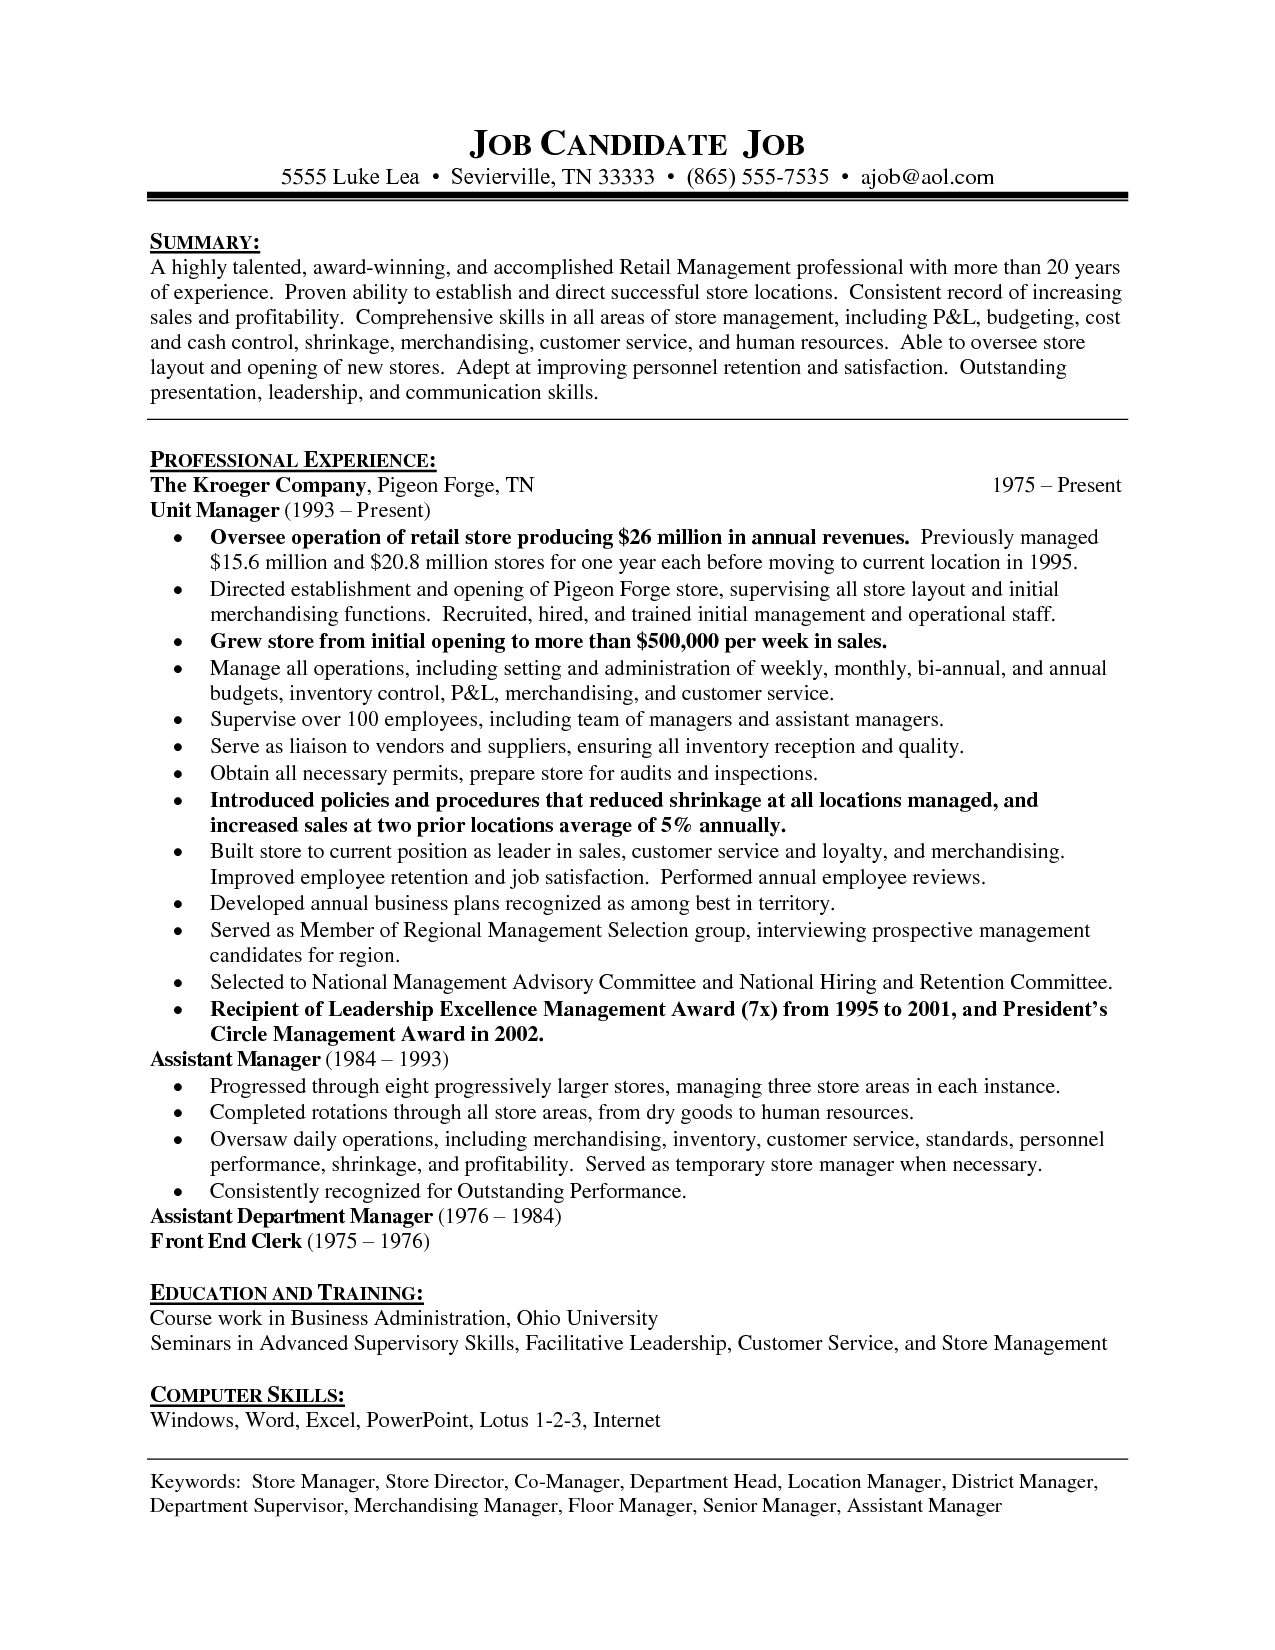 Assistant Manager Resume Format New Retail Department Store Manager Resume  Vision Specialist  Good .